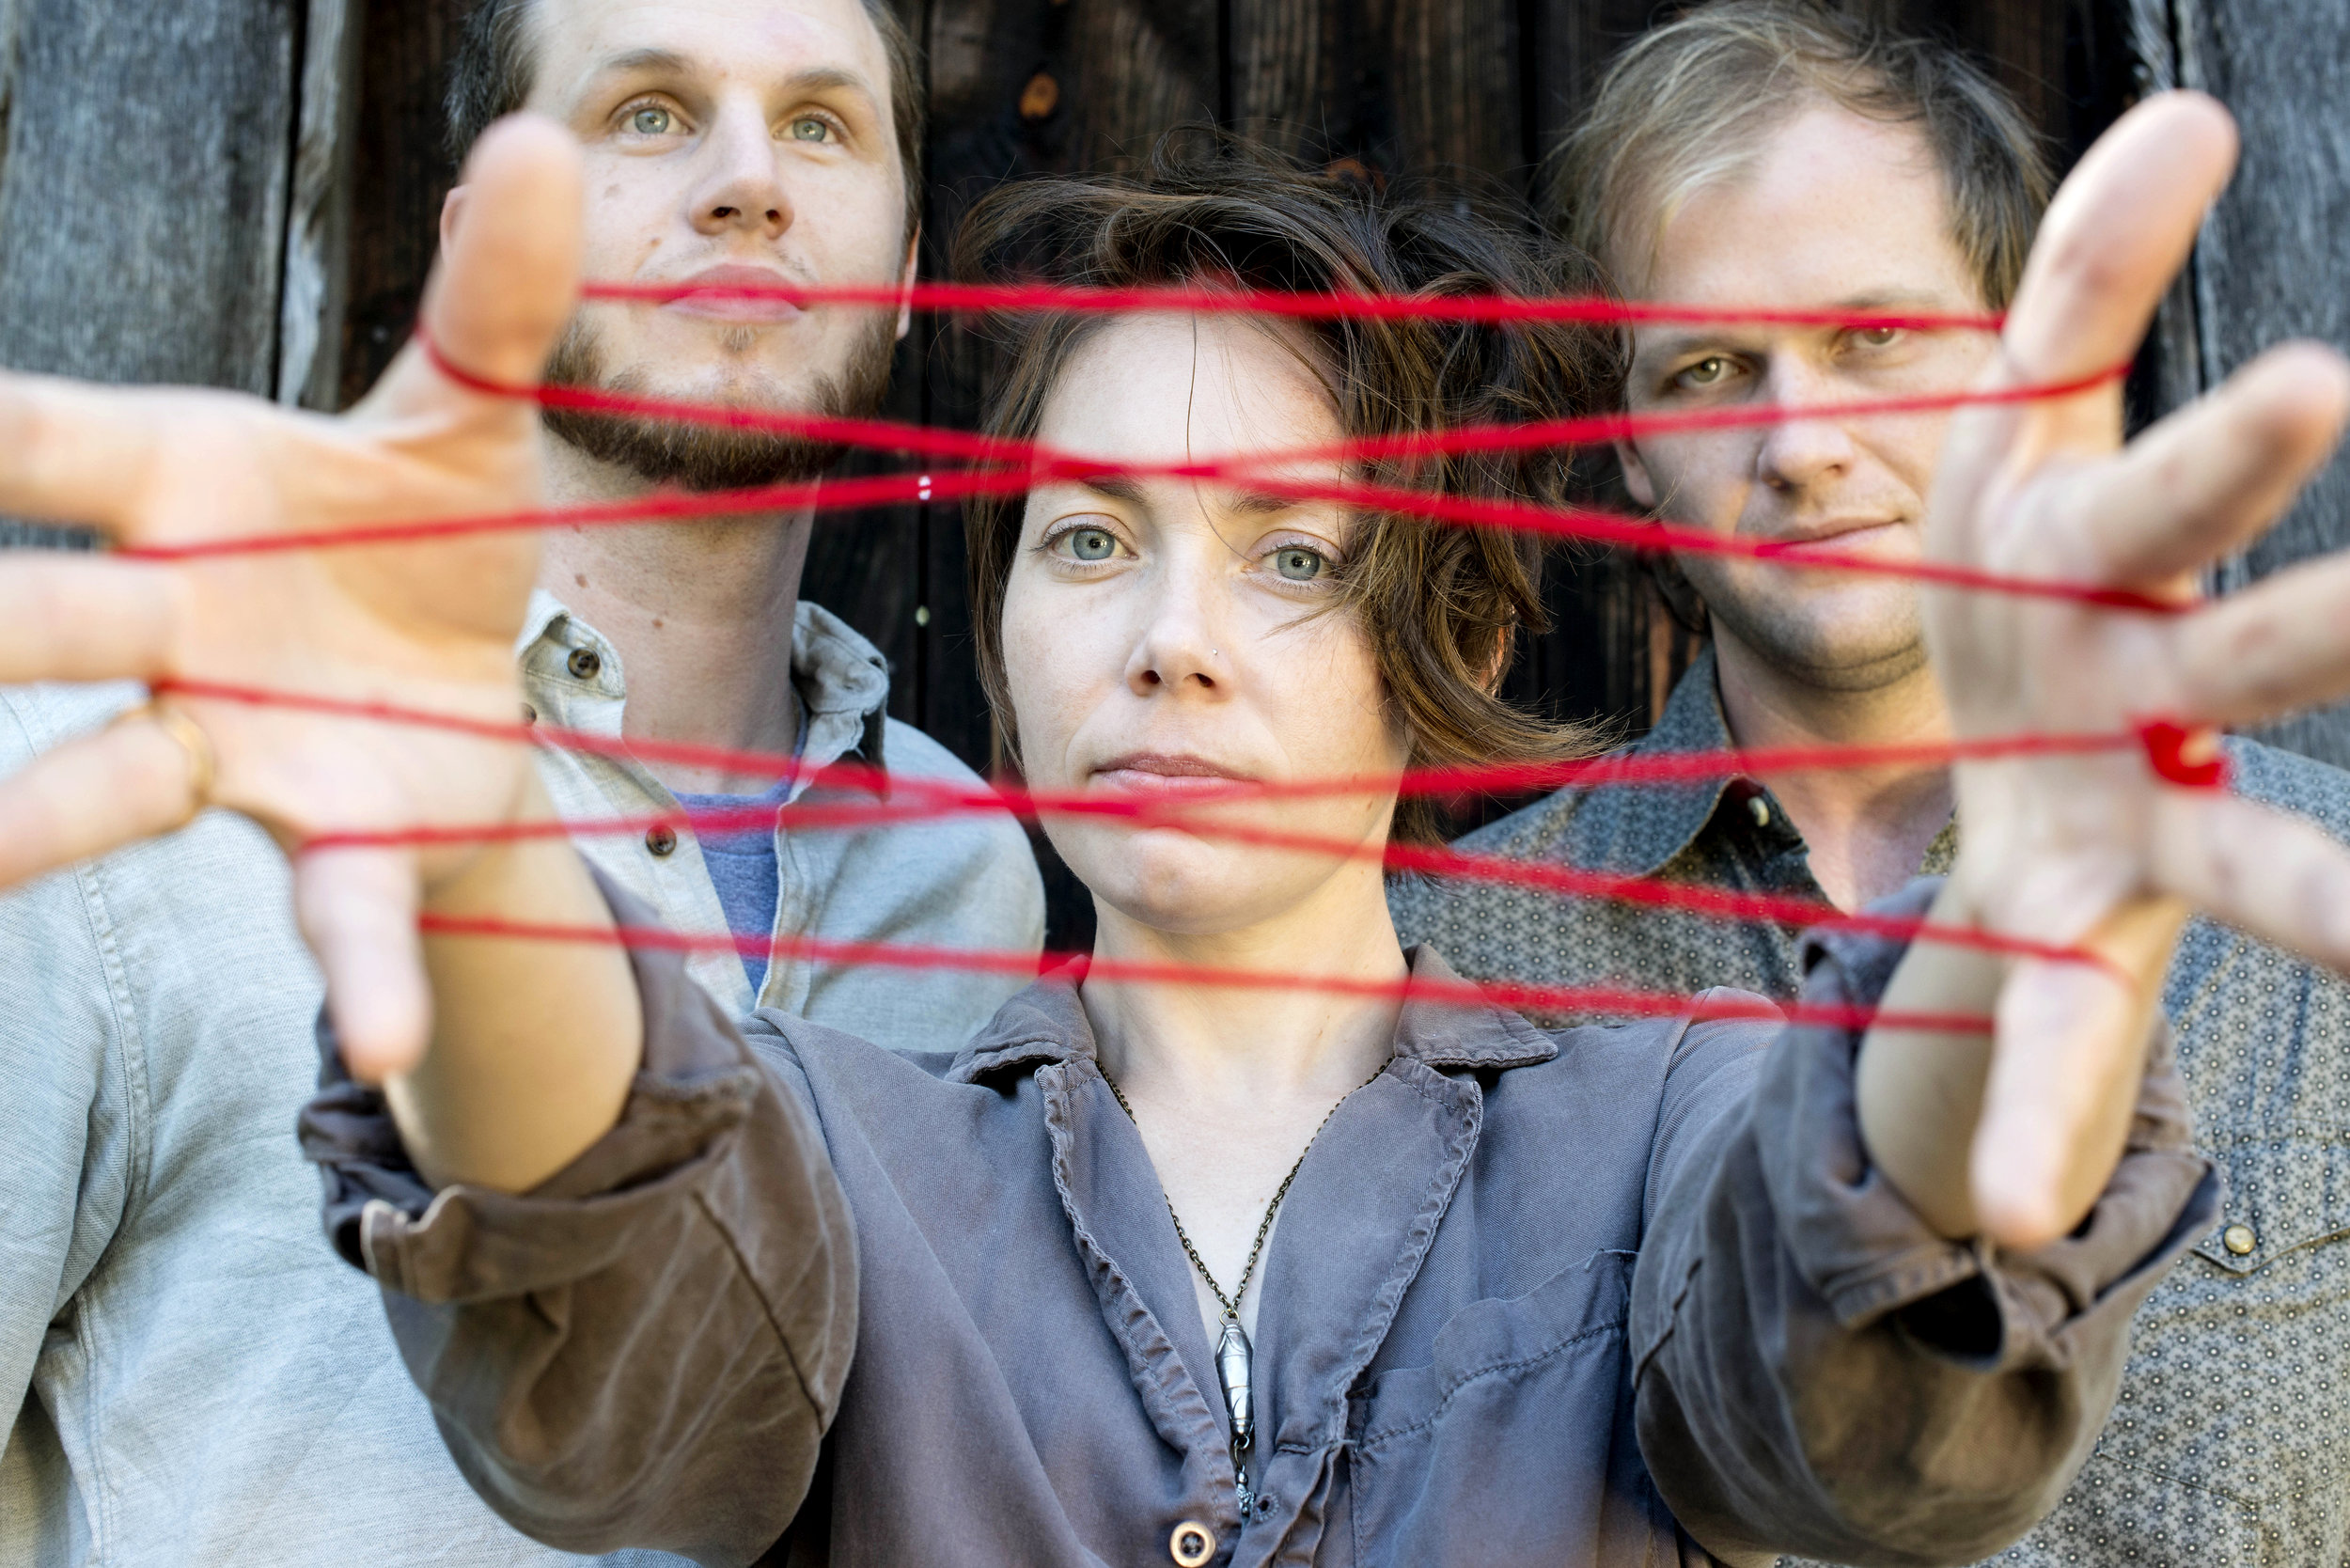 Mount Moriah is Jenks Miller (left), Heather McEntire (center) and Casey Toll (drums).  They play The Evening Muse on Thursday, November 10th.  Photo courtesy of Merge Records.